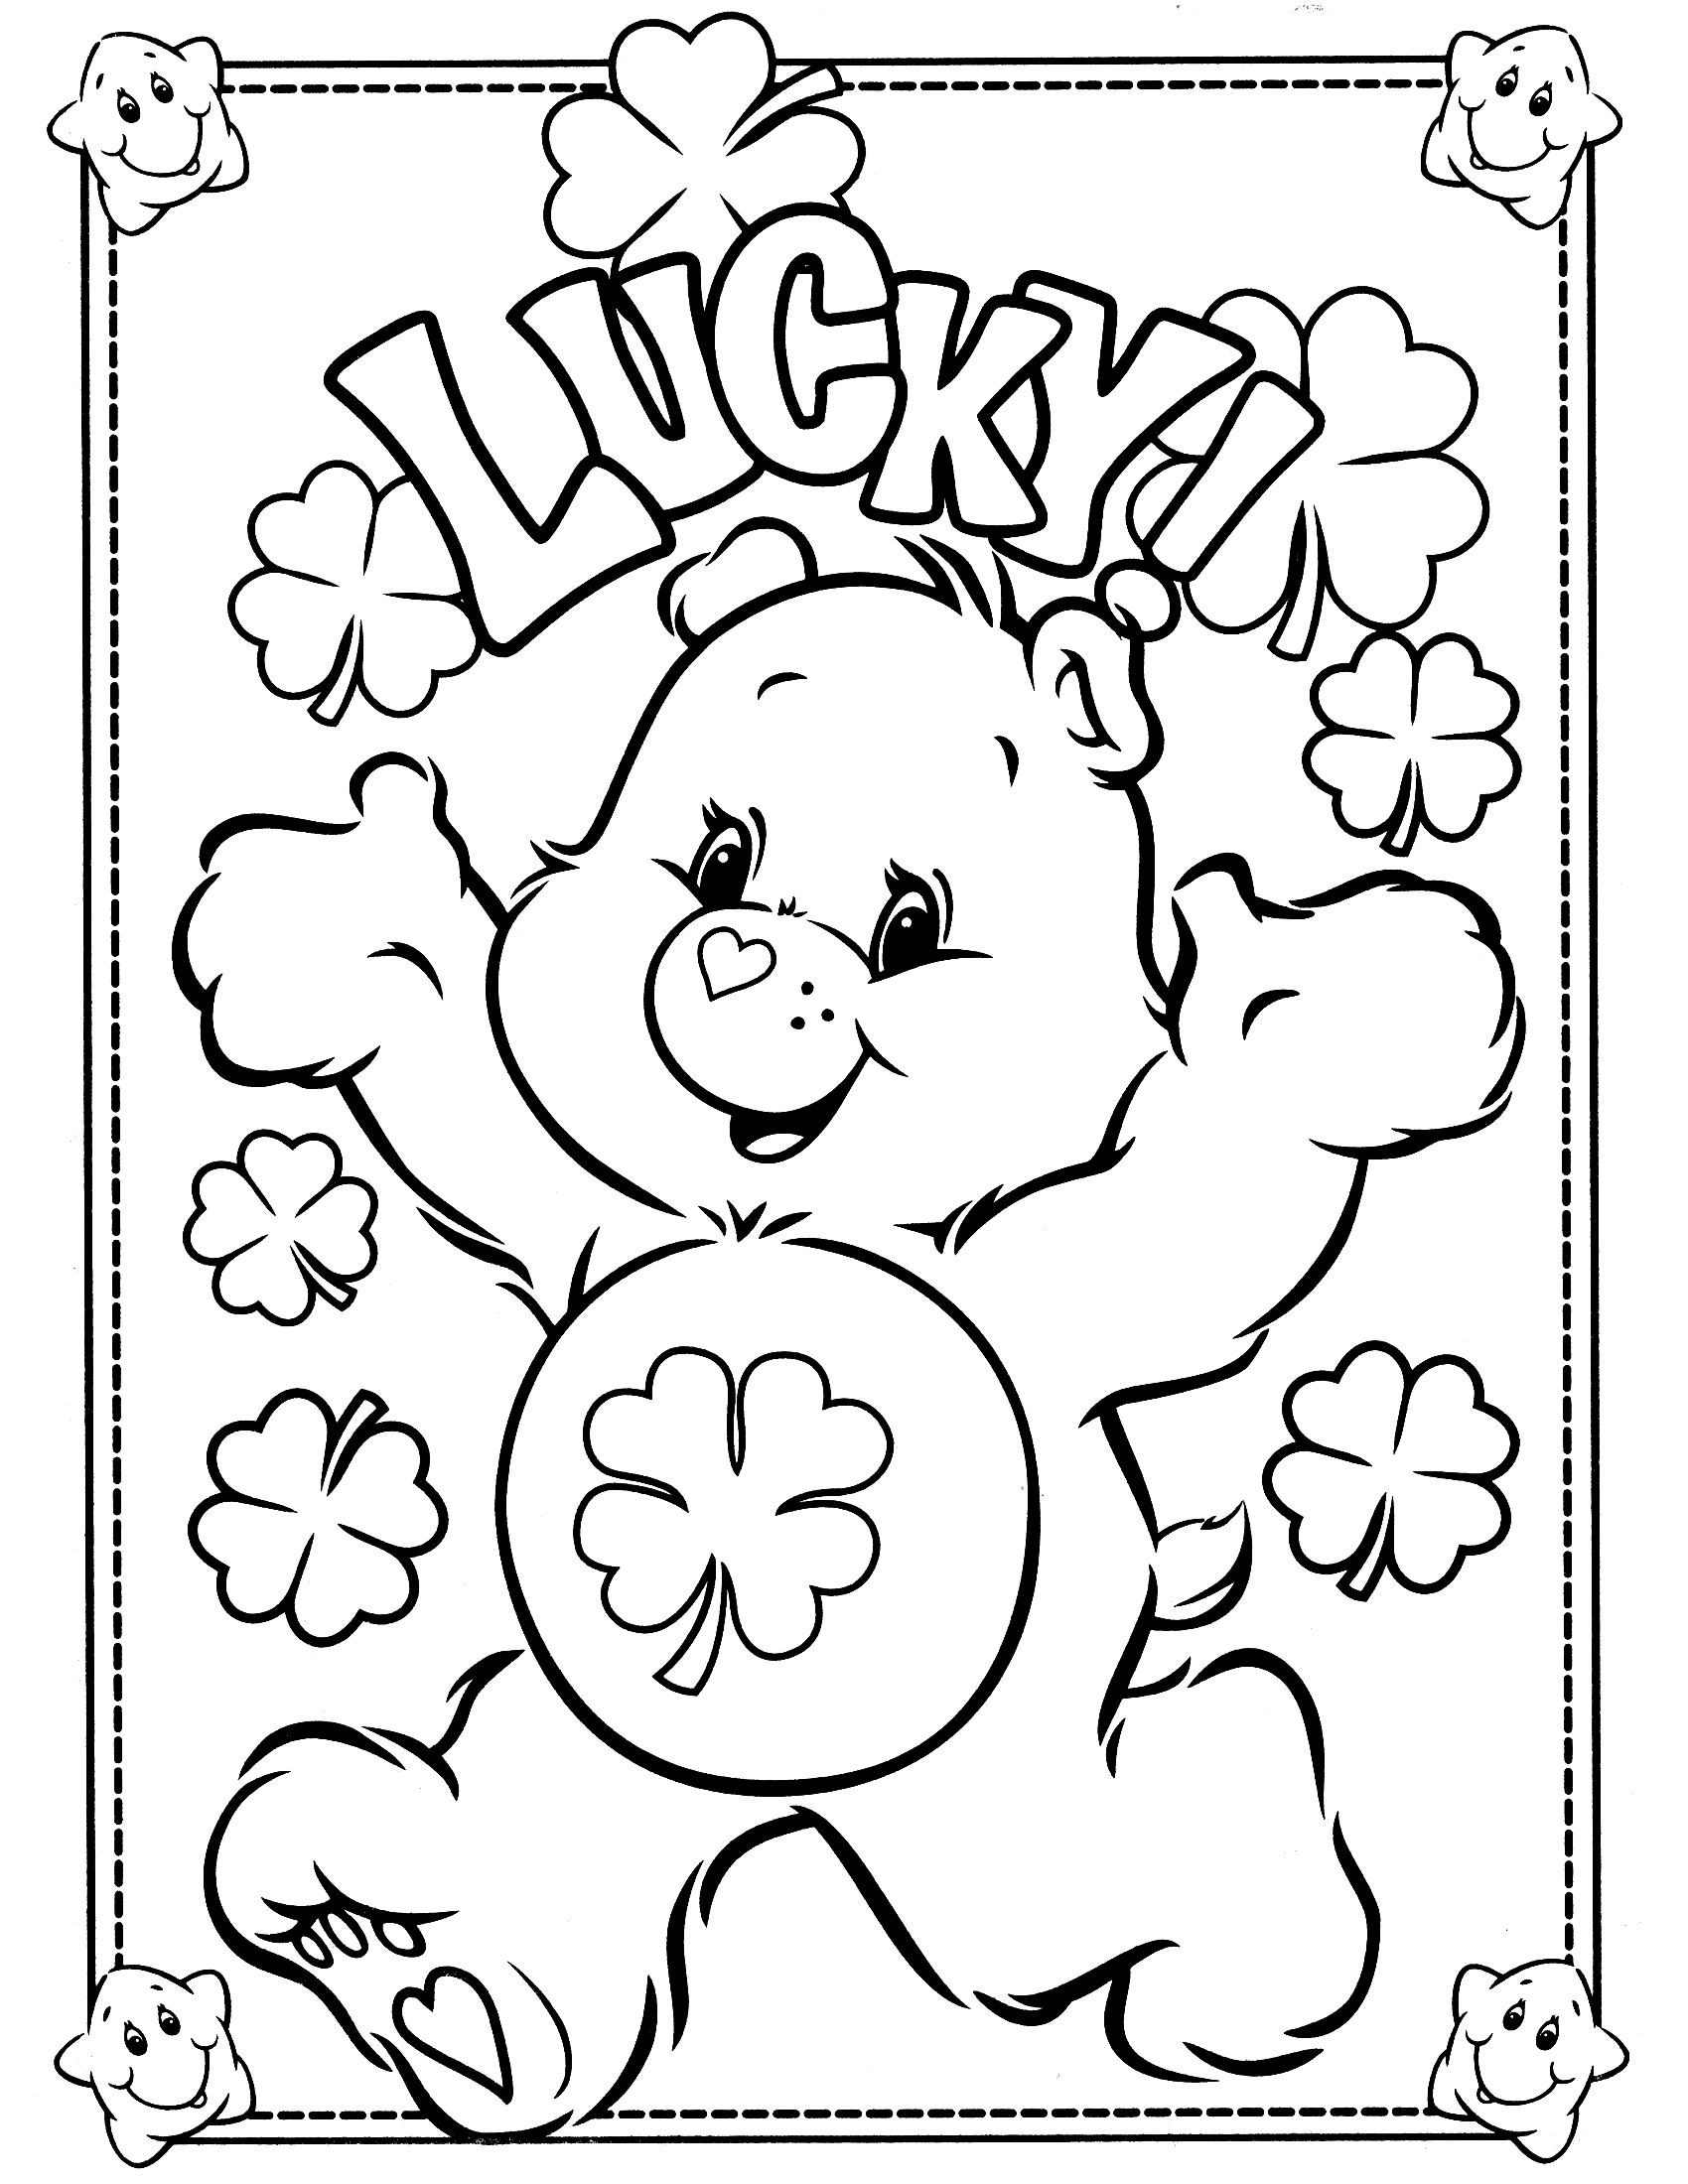 care bears coloring pages free printable care bear coloring pages for kids